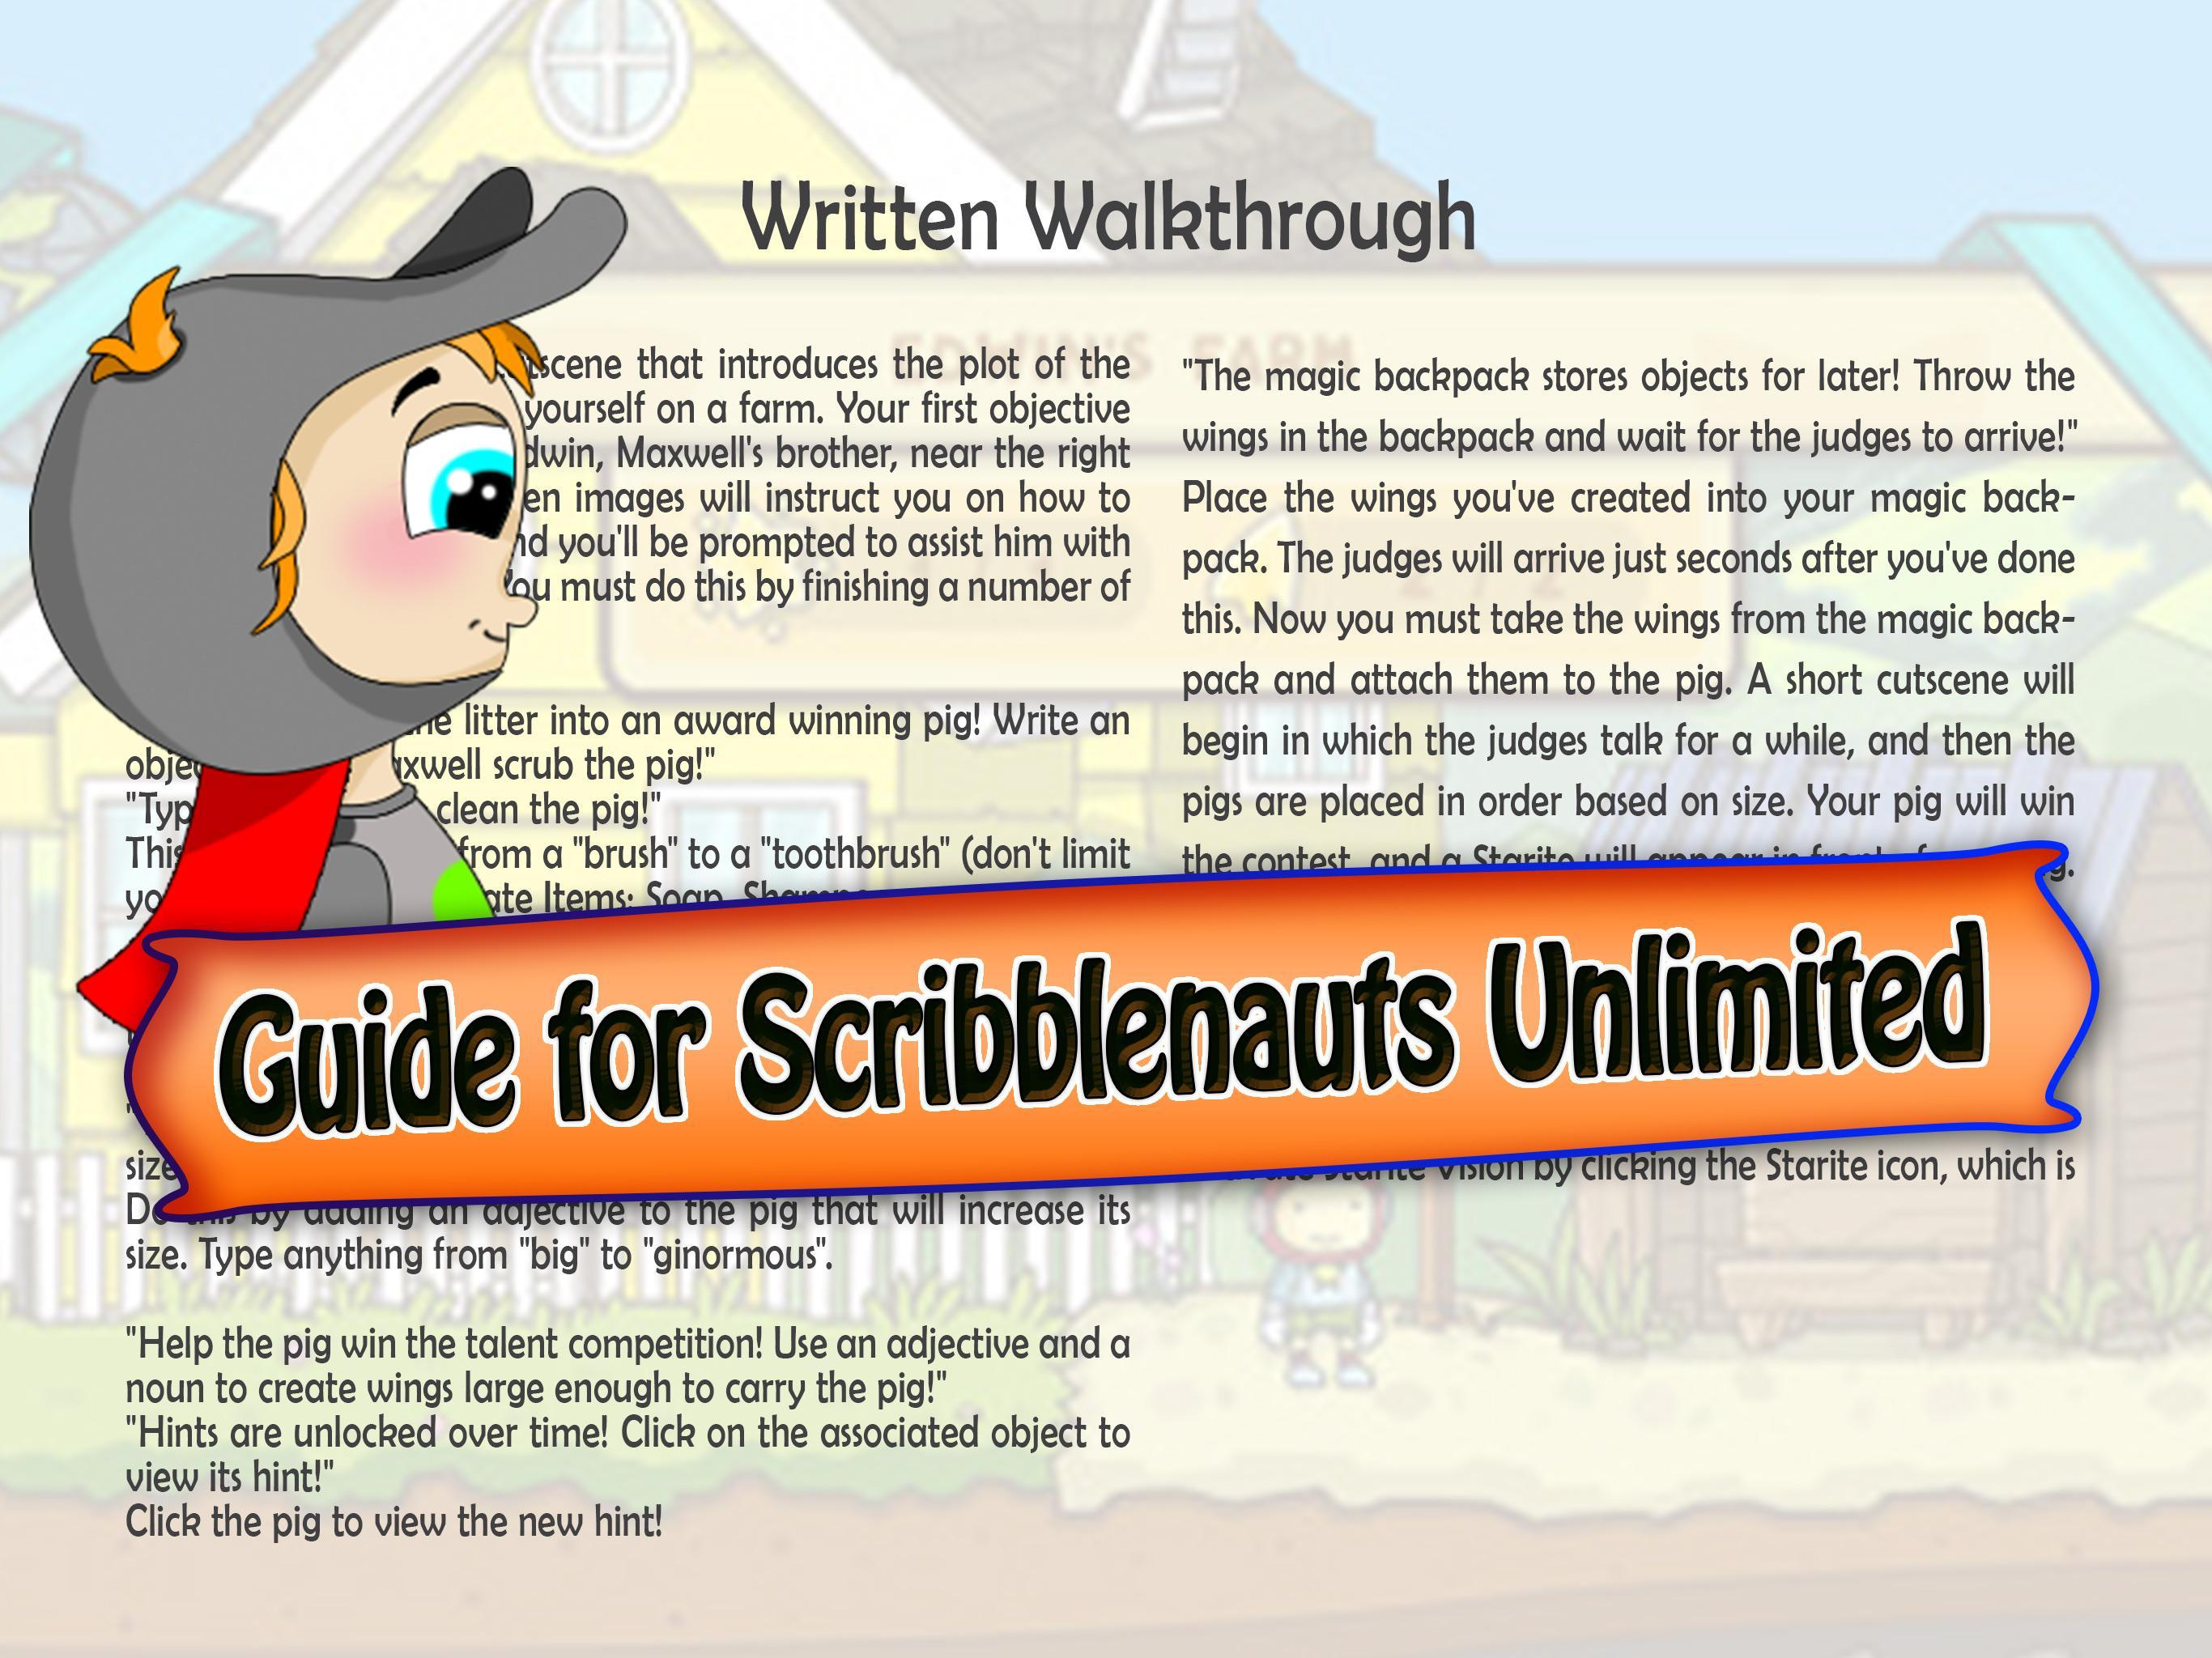 Guide Scribblenauts Unlimited for Android - APK Download